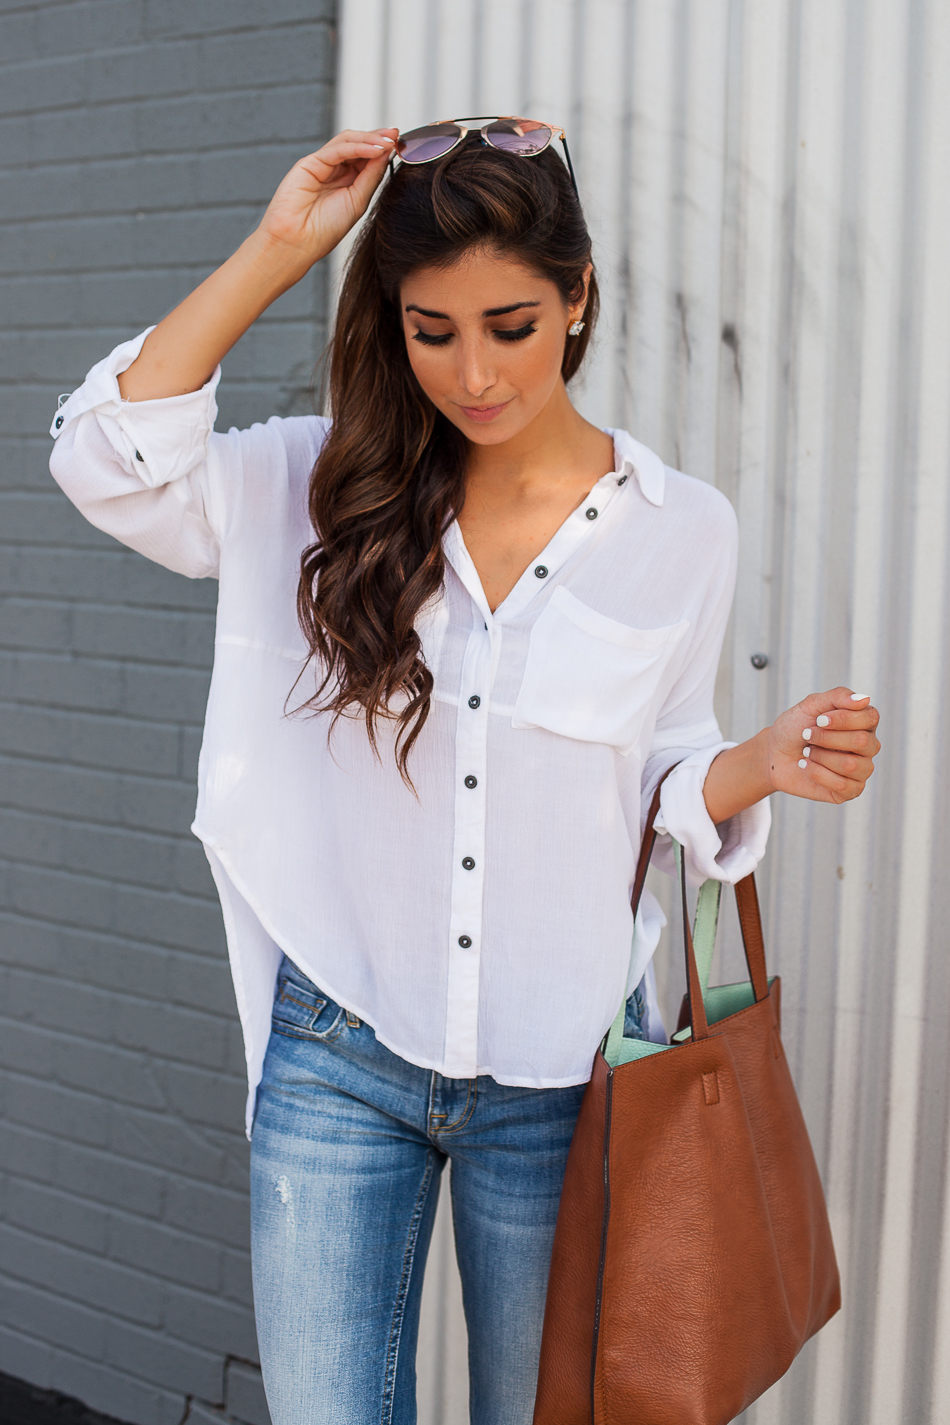 effortless tee and jeans